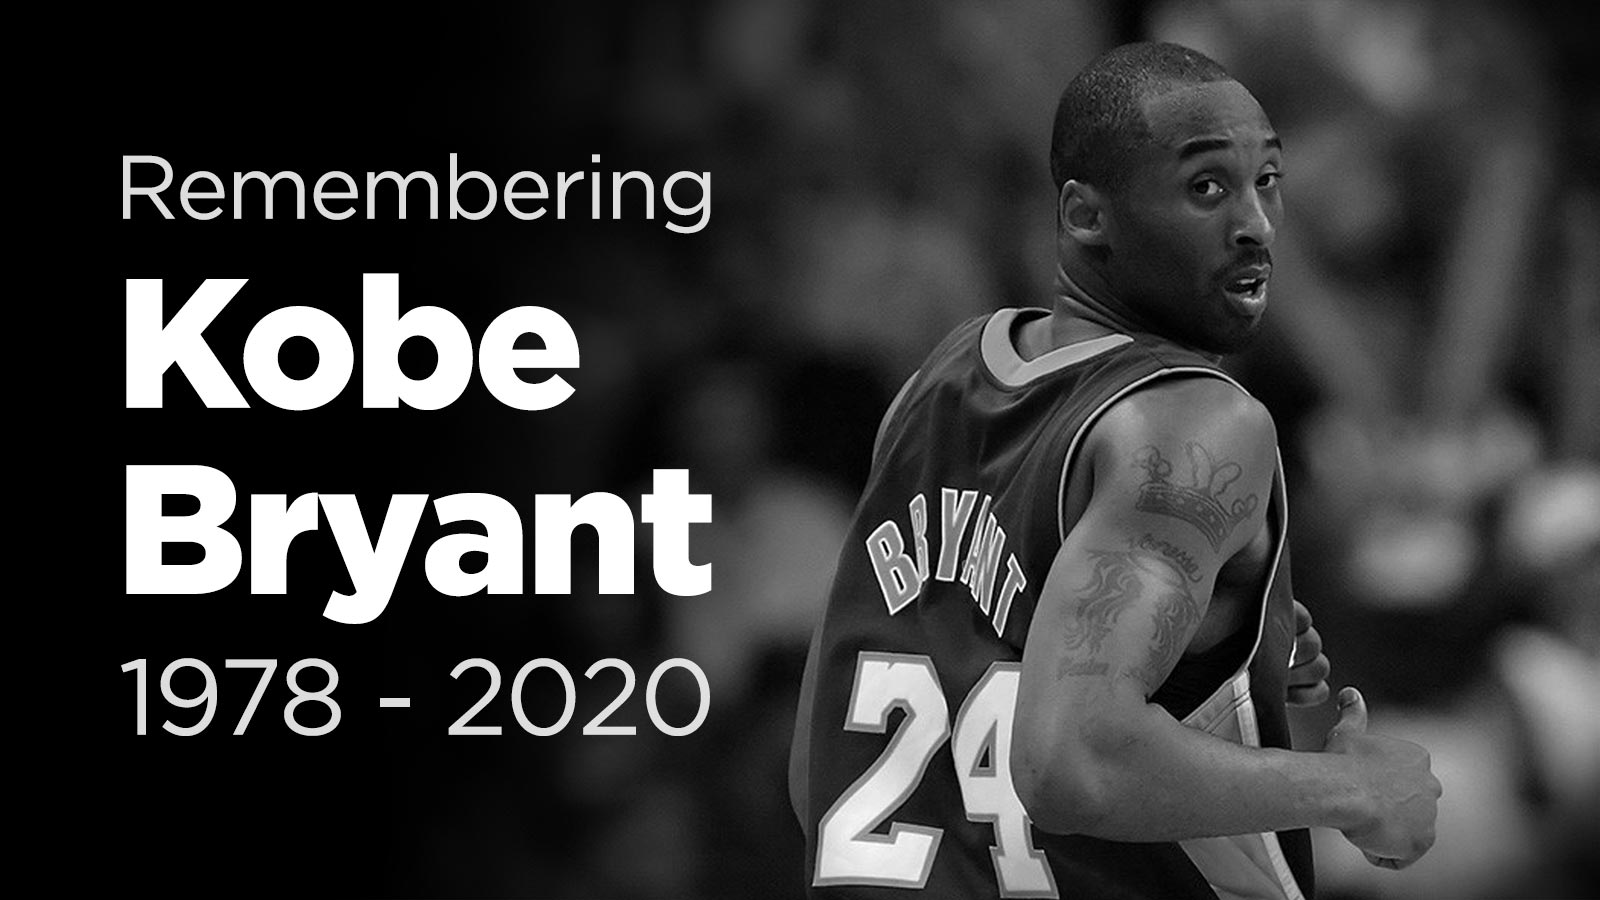 Bryant Kobe helicopter crash; after dead SiriusXM honors